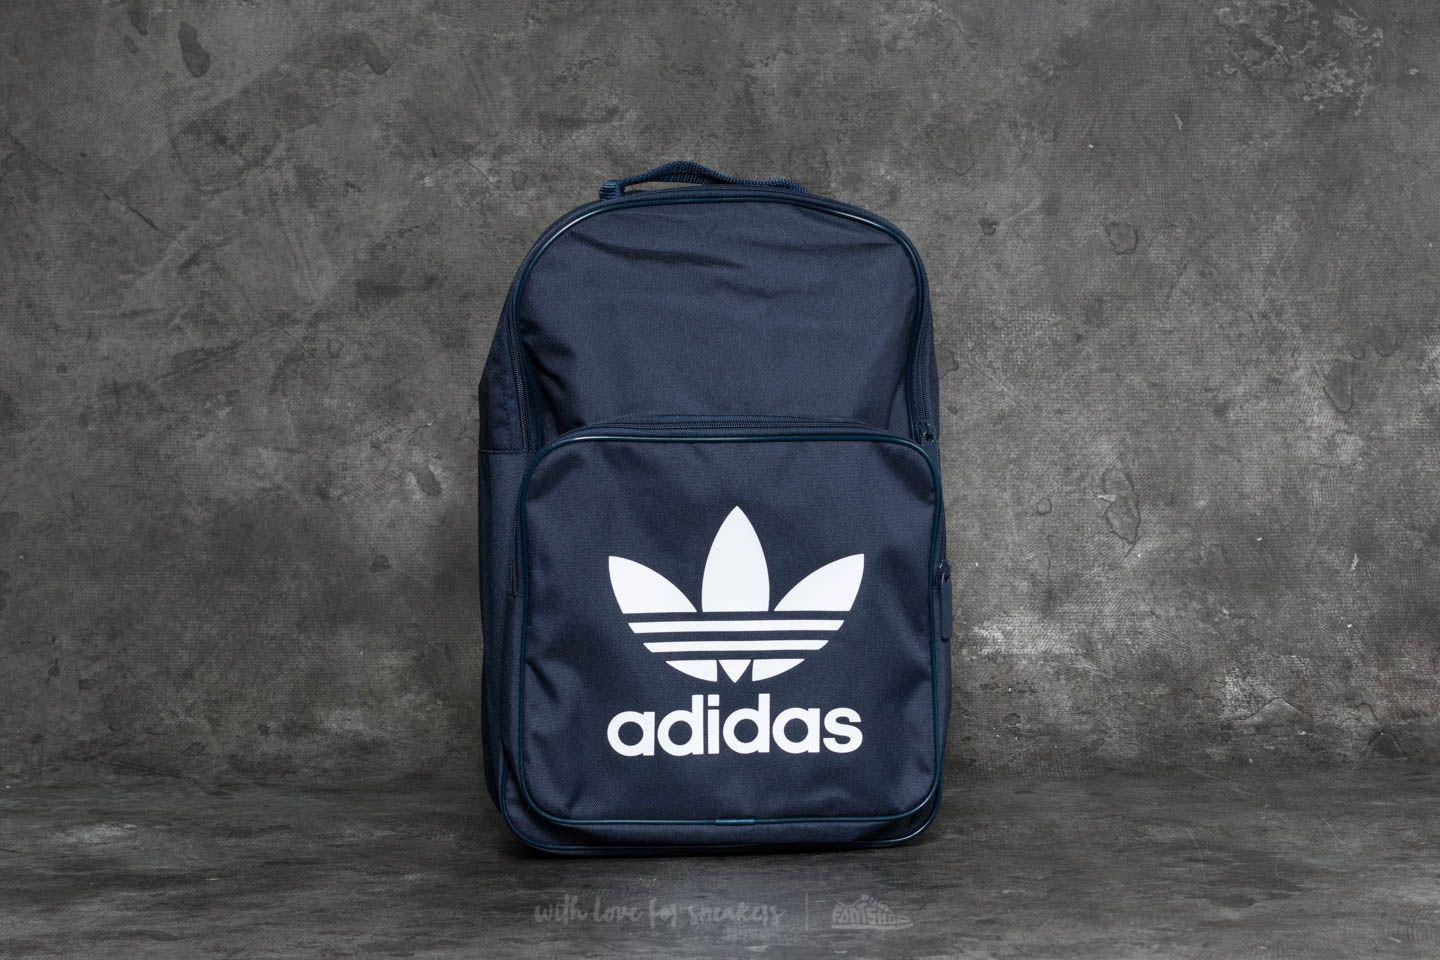 Adidas Originals - Blue Adidas Classic Trefoil Backpack Collegiate Navy for  Men - Lyst 6298981072a2b